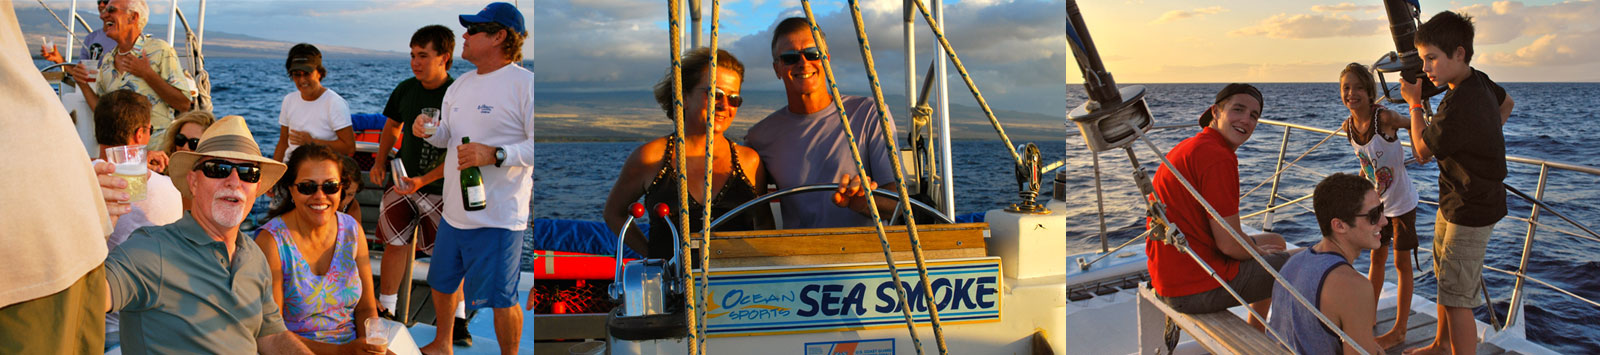 Hawaiian Ocean Sports - Champagne Sunset Sail and Cruises